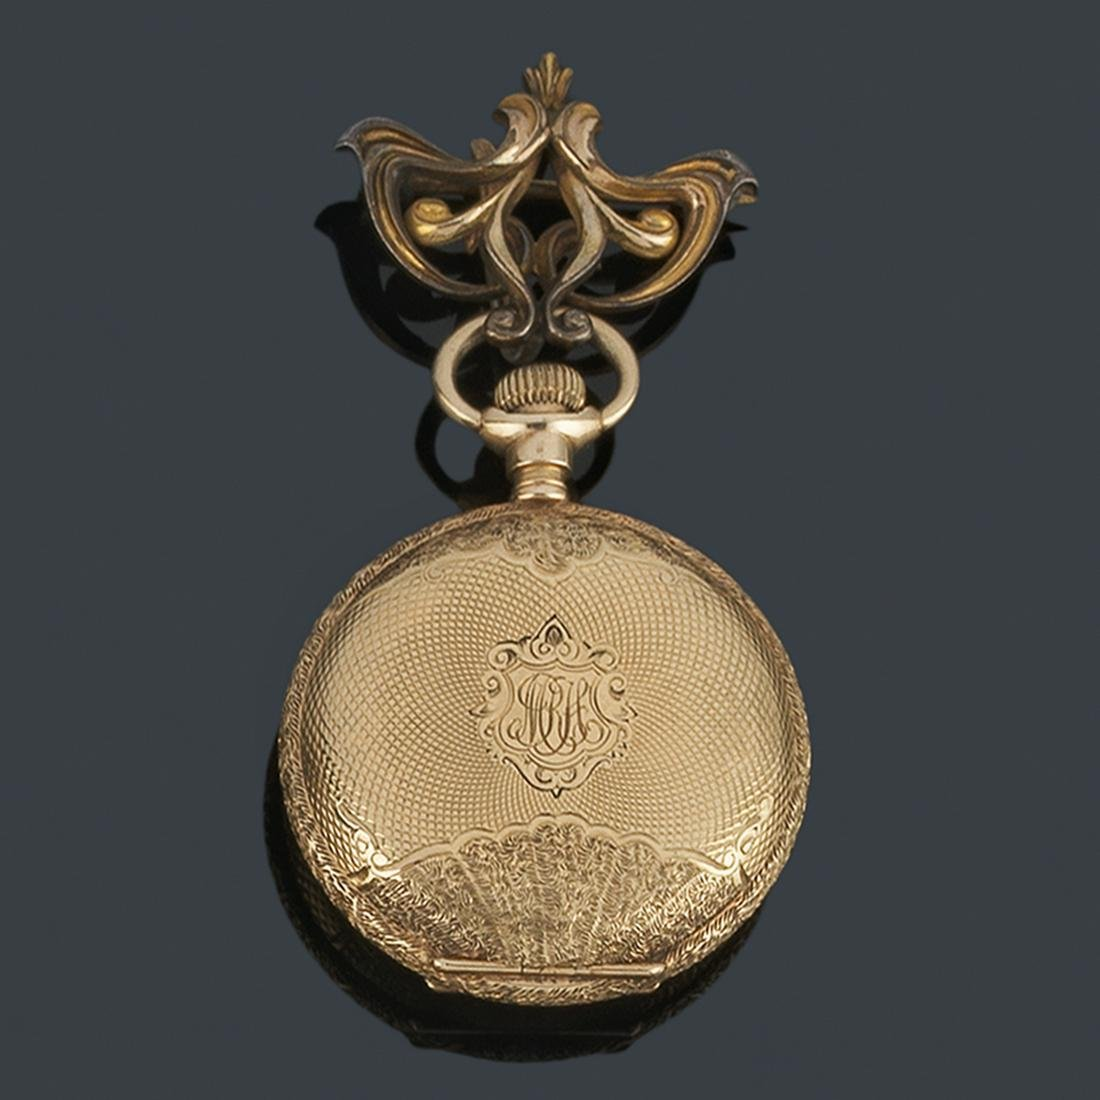 AMERICAN WALTHAM, pocket watch in 14K gold with brooch